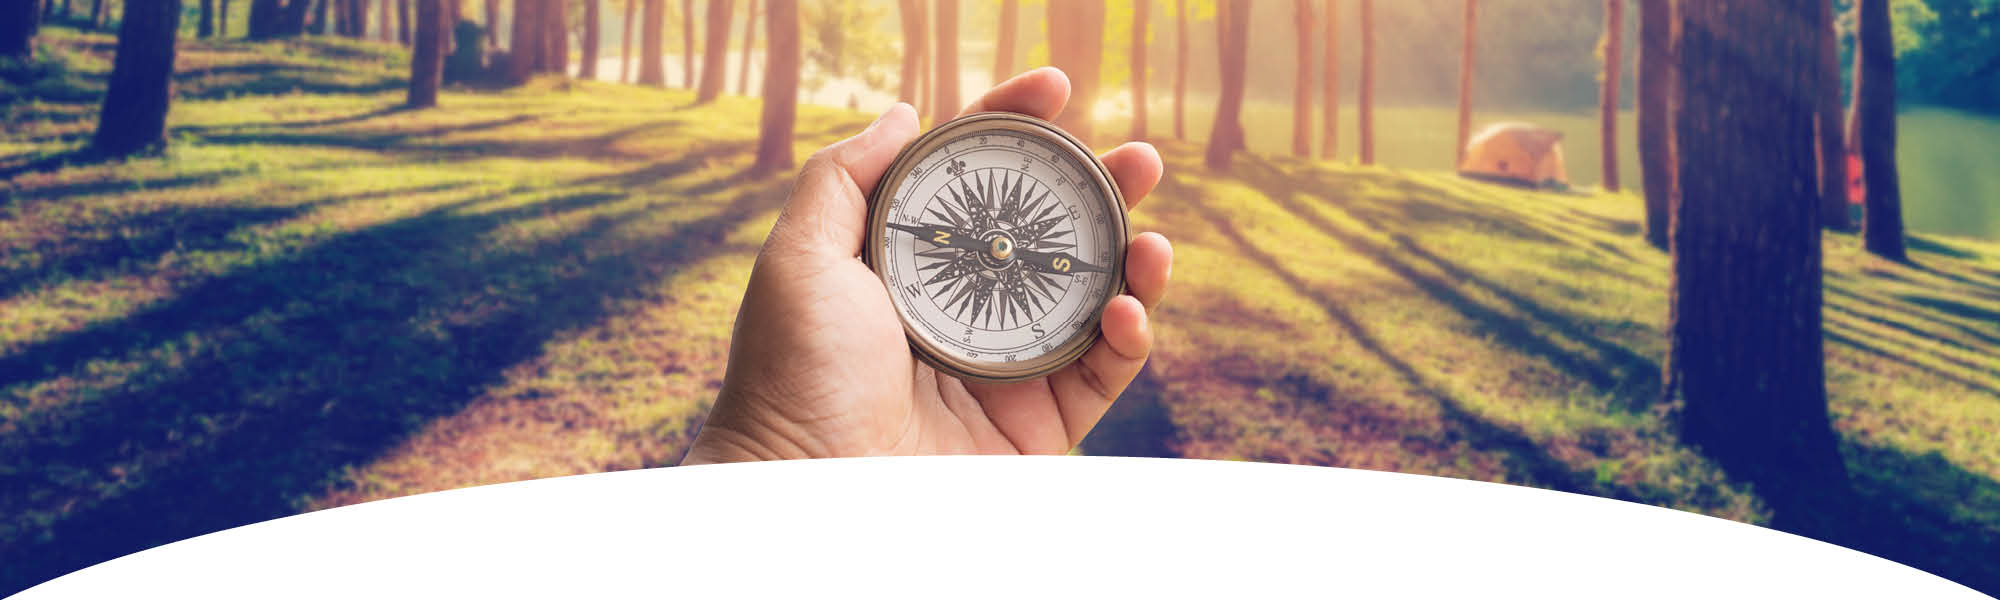 Community Resource Navigator - hand holding a compass in a forest